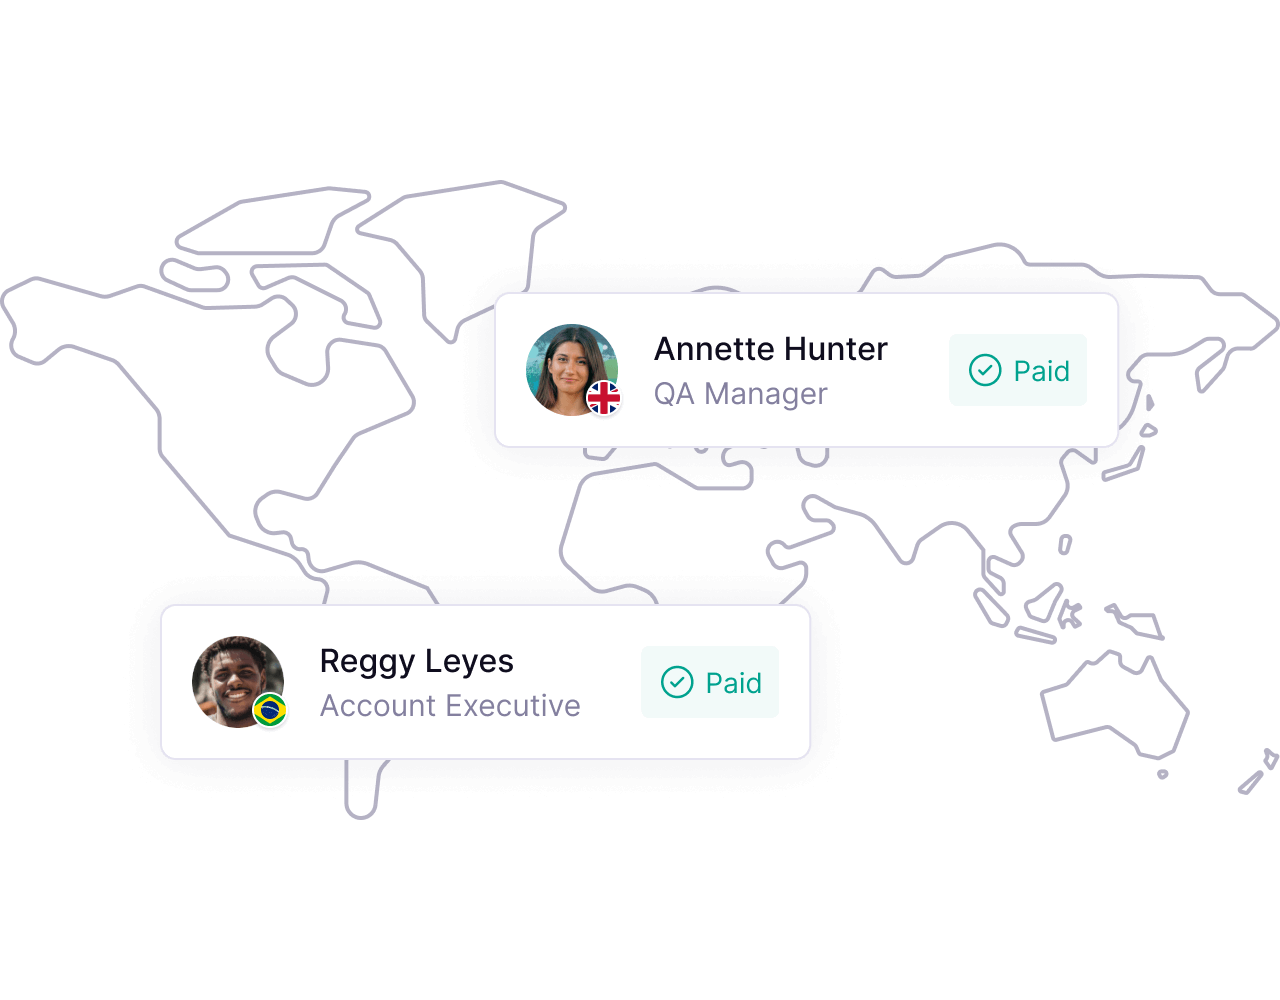 World map with two remote employees in view